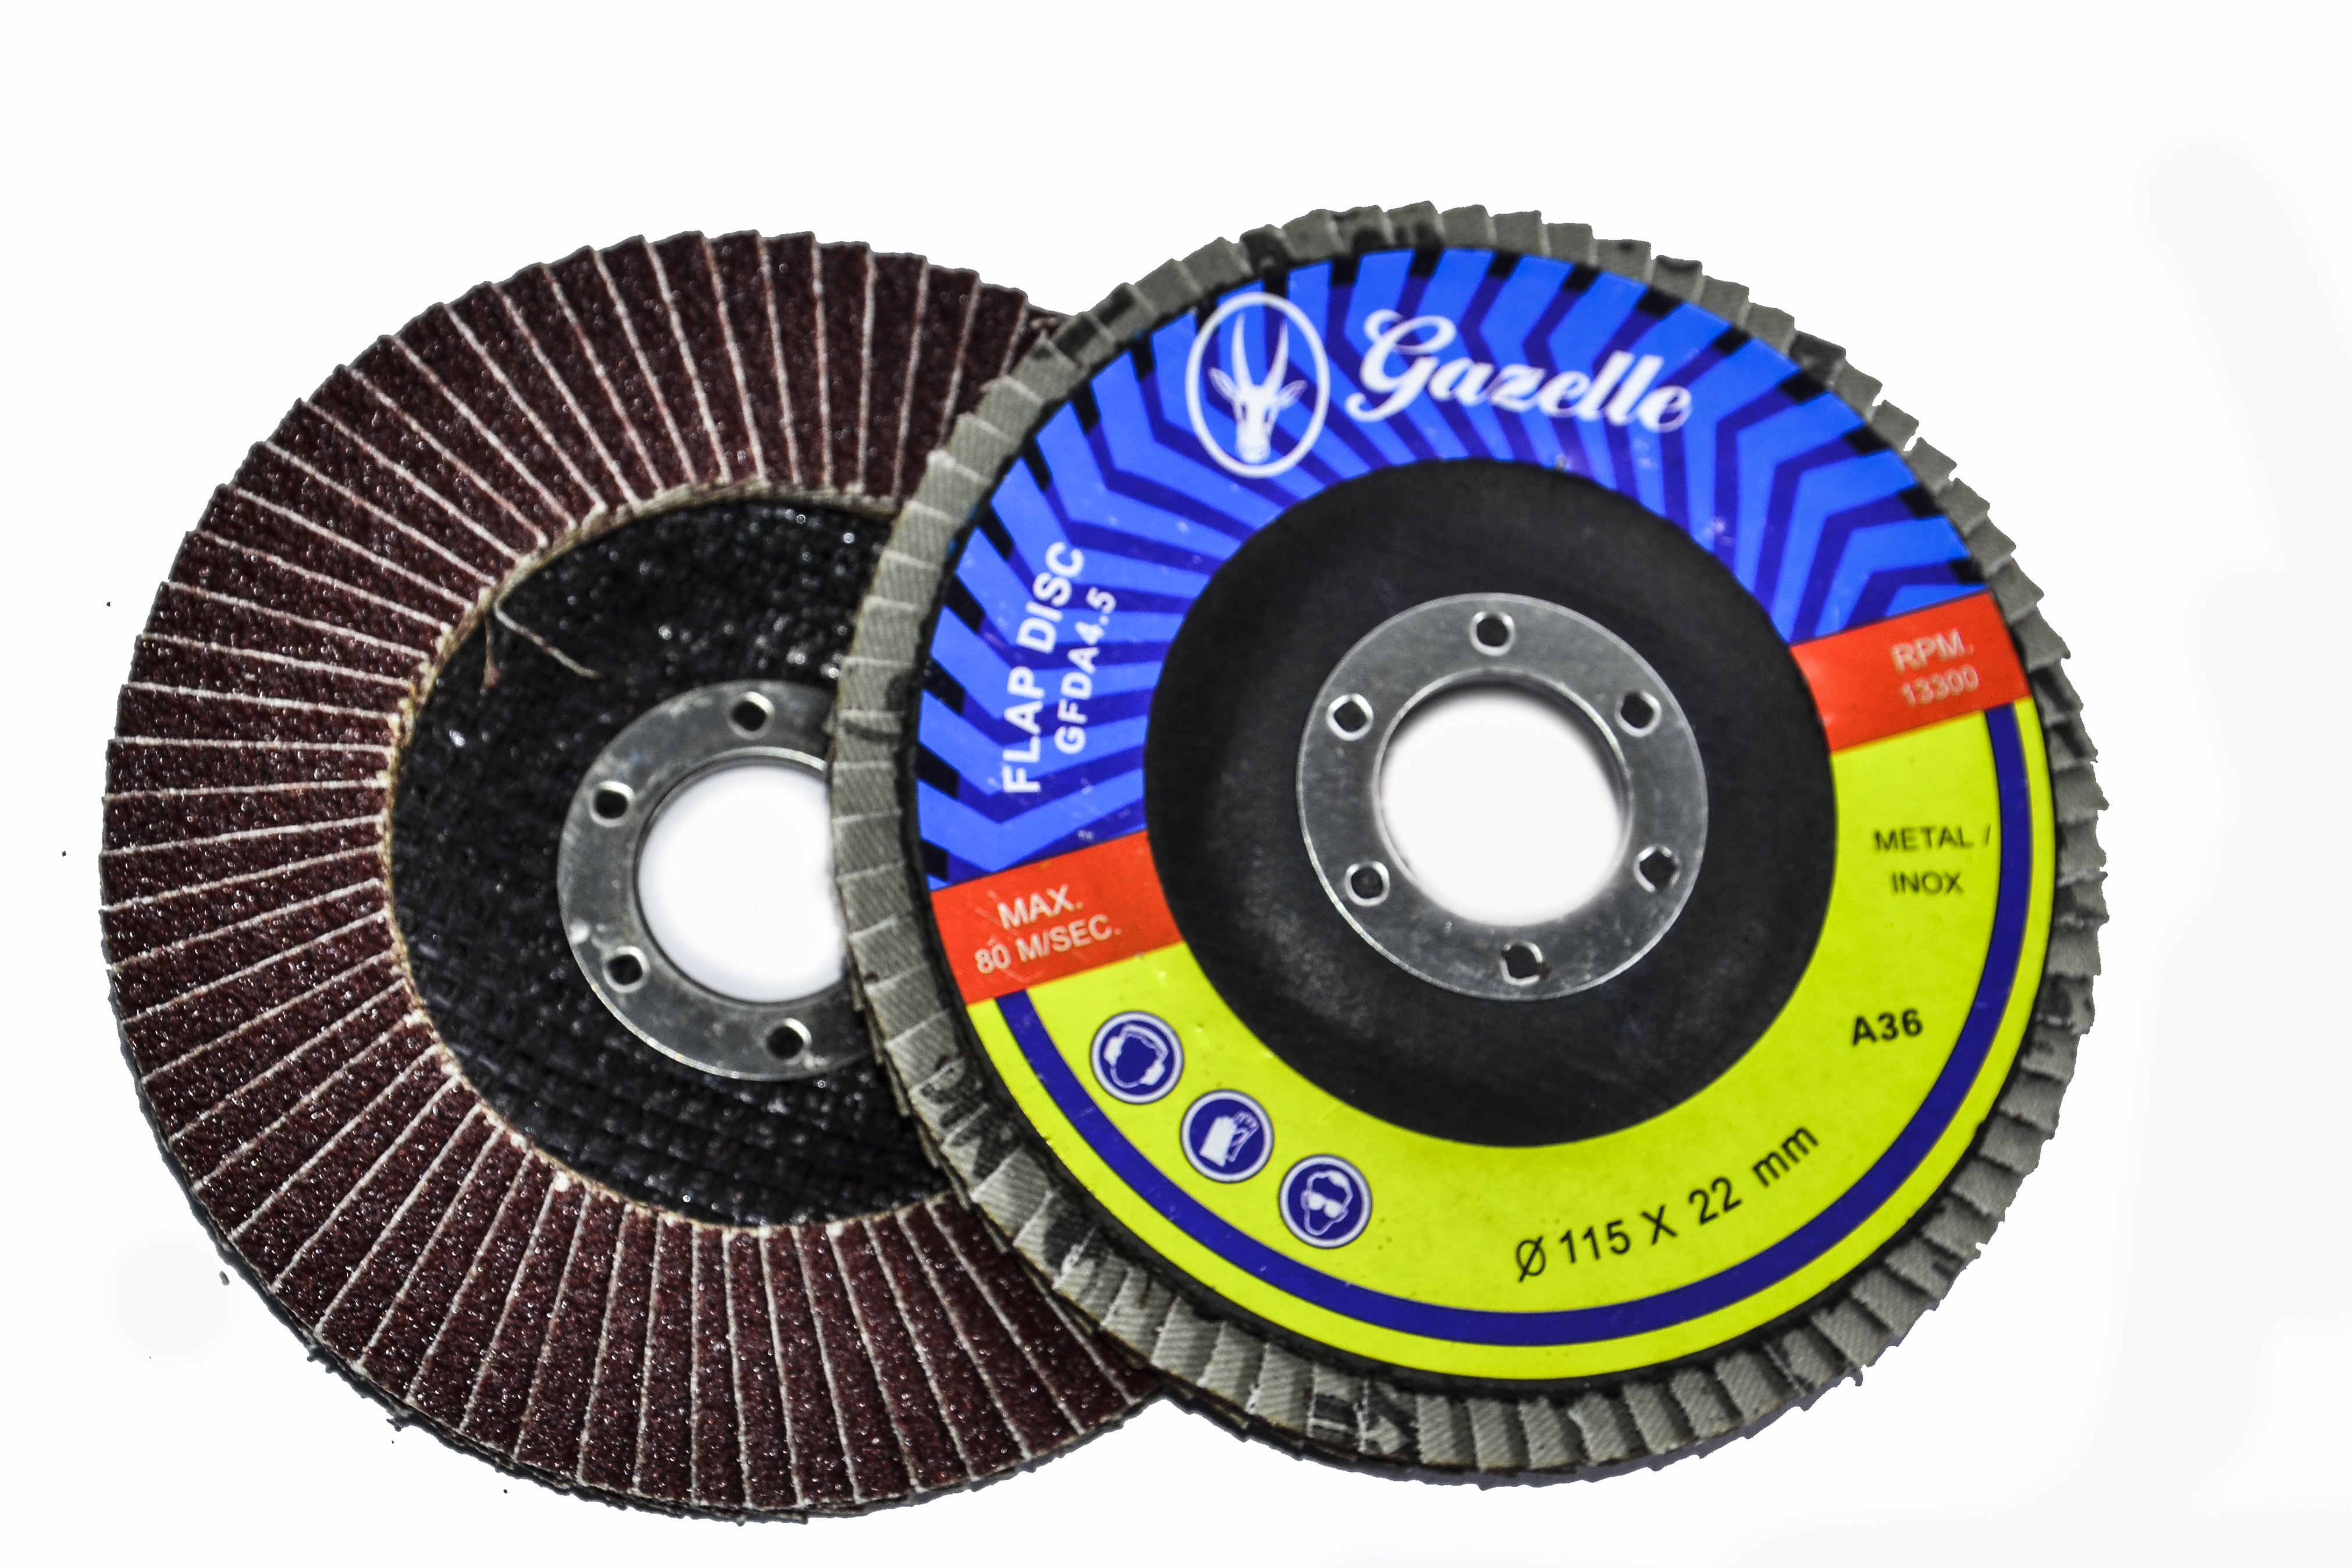 GAZELLE GFDZ412G - Flap Discs 4in – 100mm x 120G ZIR Blue